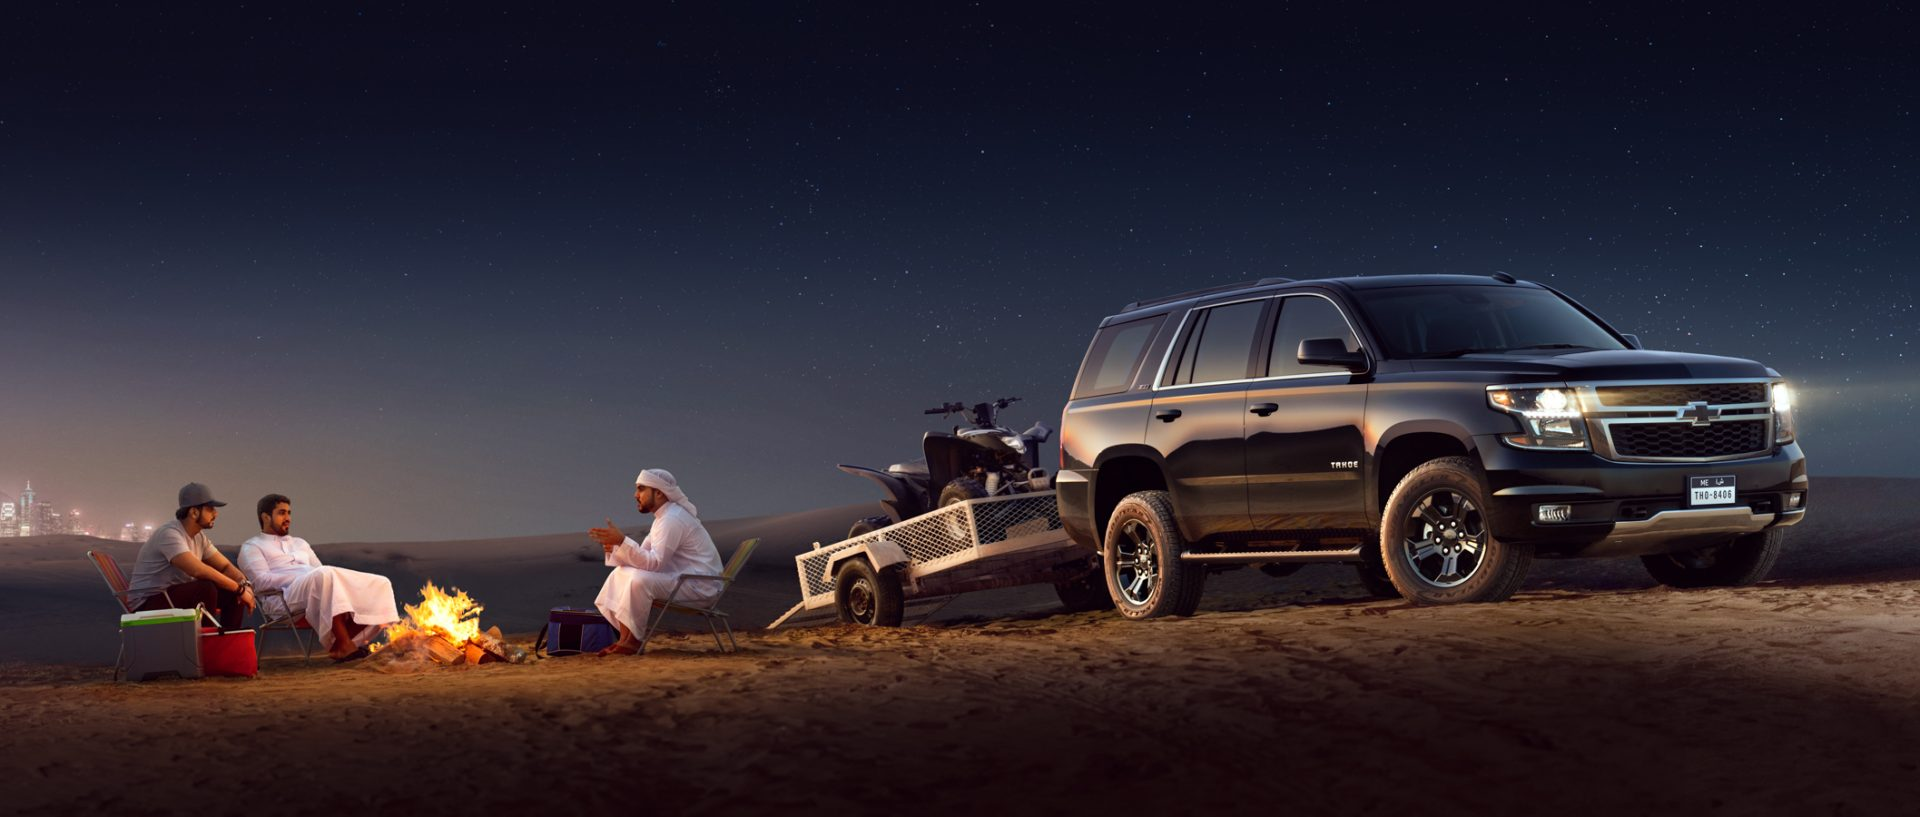 Chevrolet Tahoe, Midnight Edition. Photographed in the desert, next a camp fire and couple of friends sitting around it.